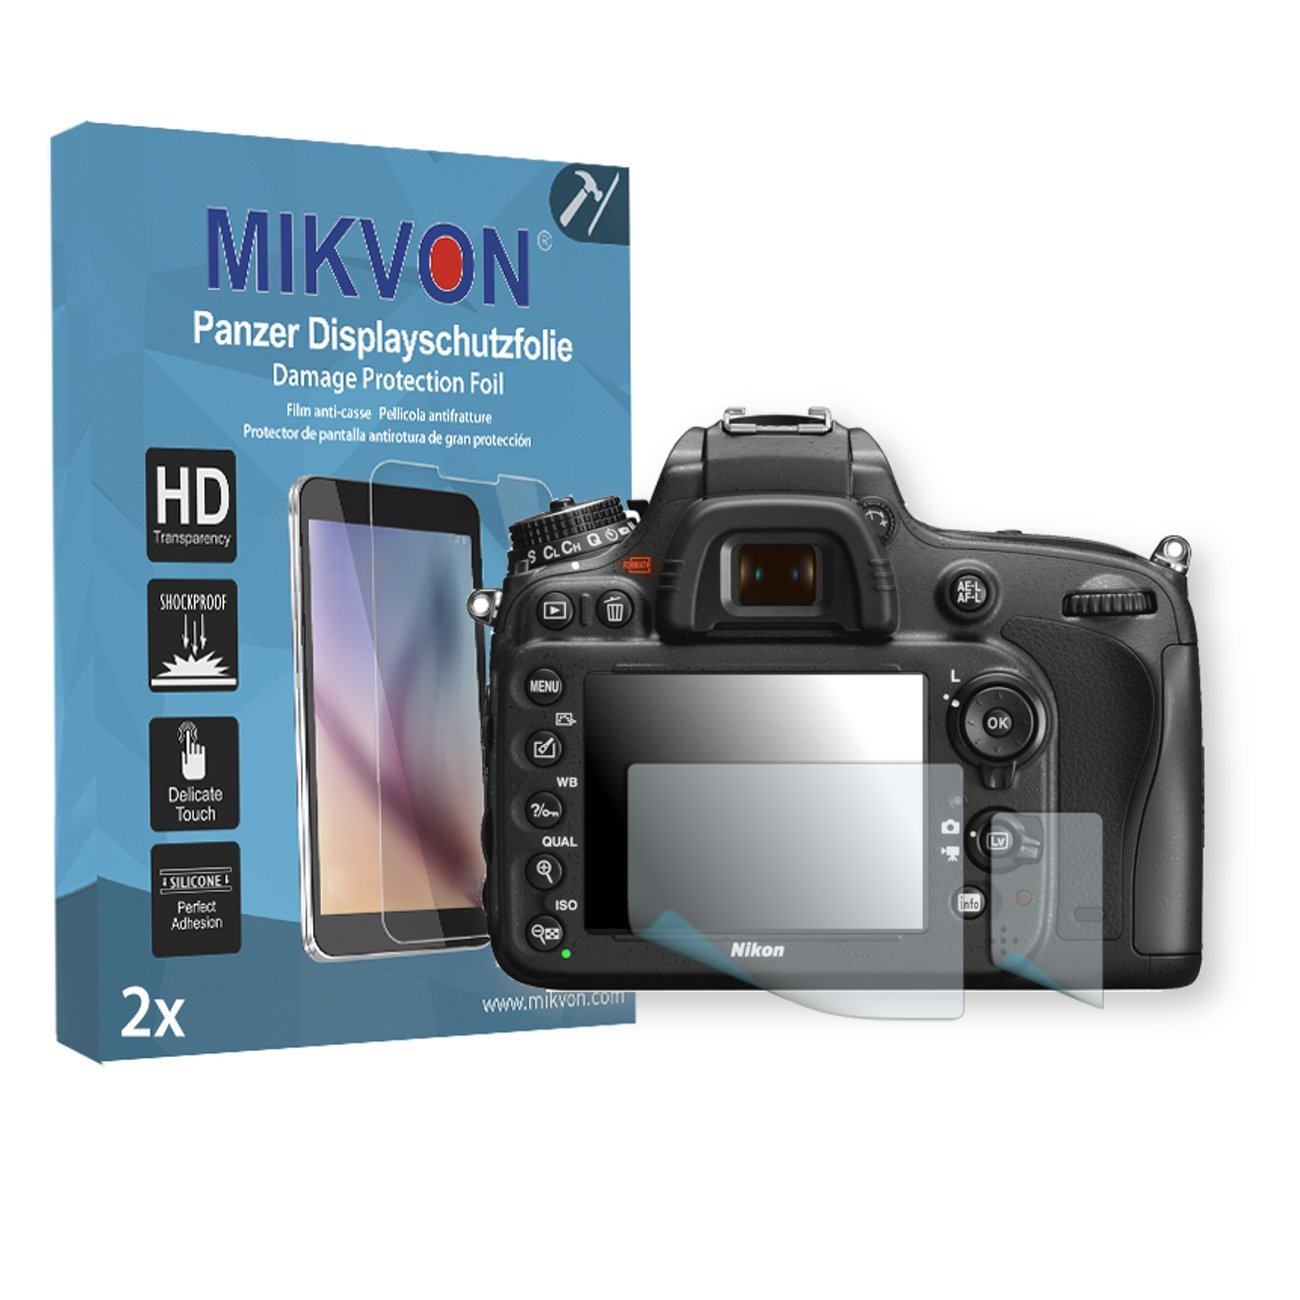 2x Mikvon Armor Screen Protector for Nikon D600 screen fracture protection film - Retail Package with accessories